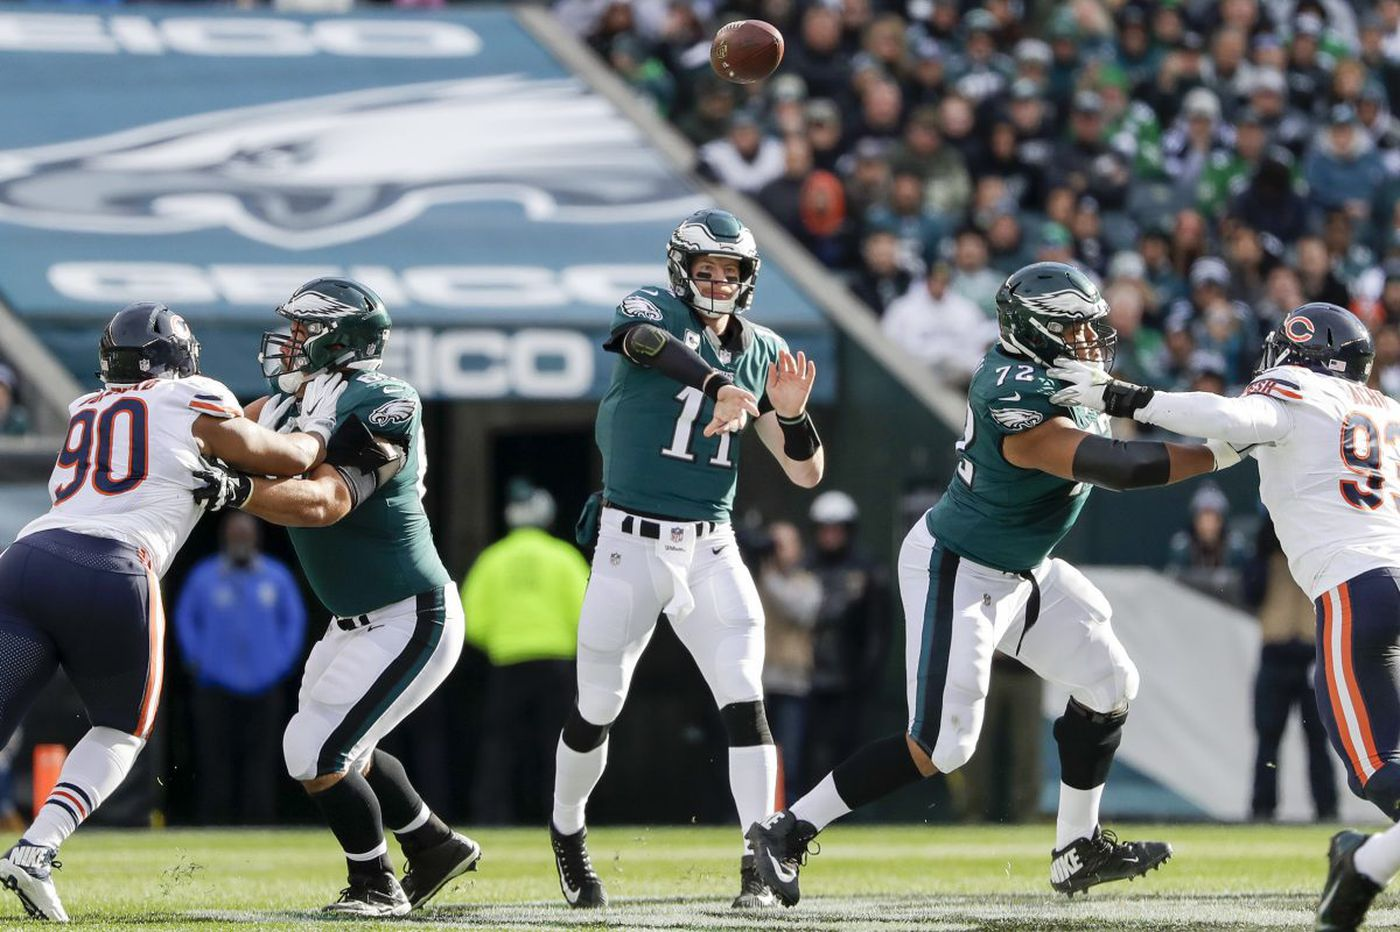 Five reasons the Eagles beat the Bears | Paul Domowitch